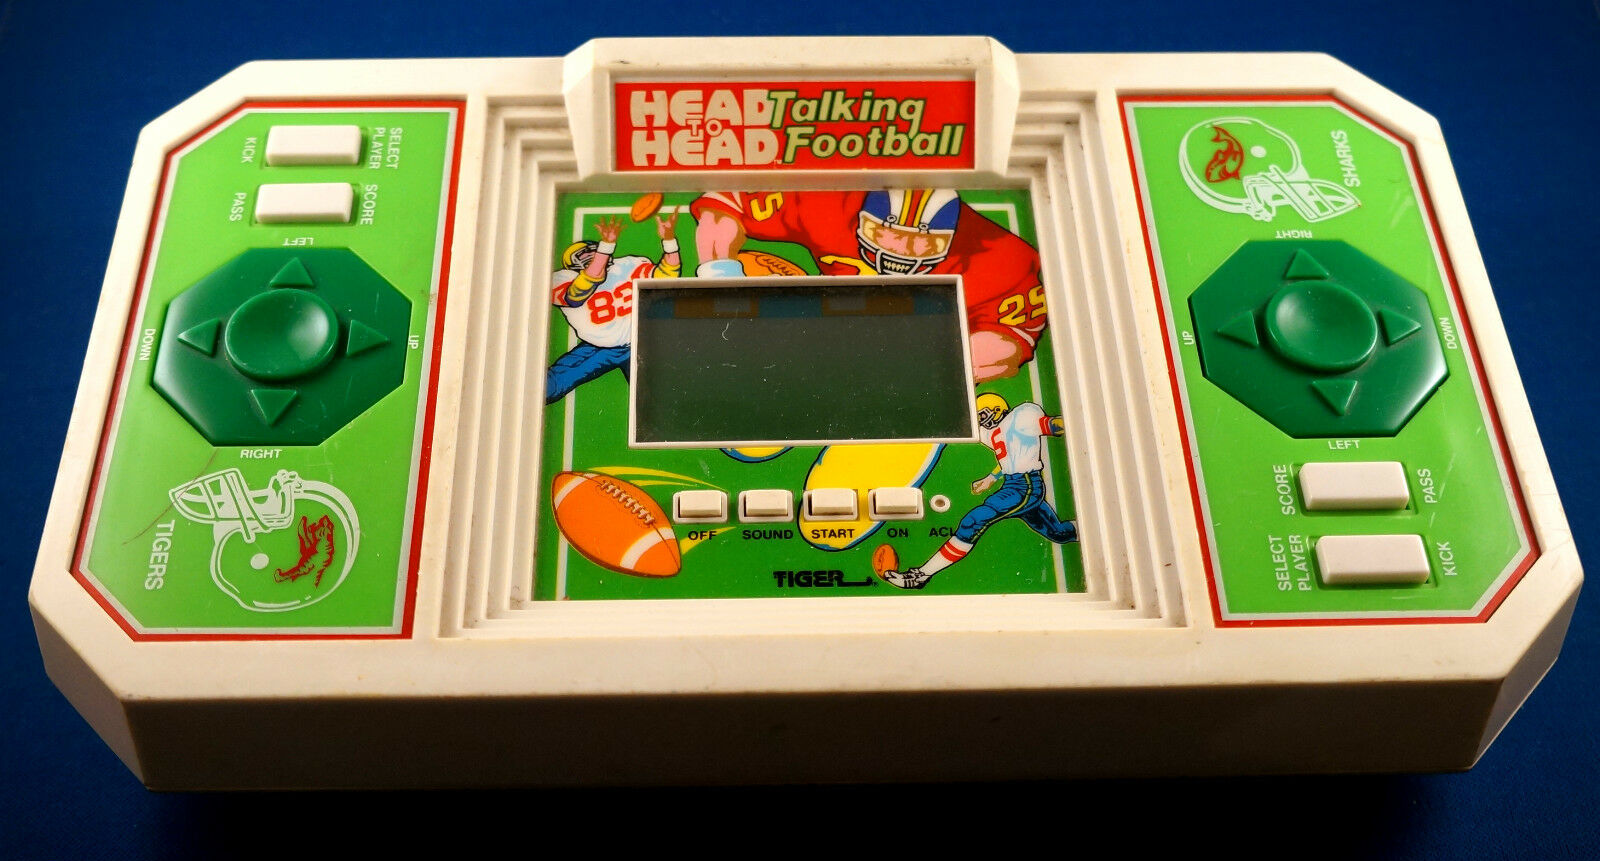 HEAD TO HEAD TALKING FOOTBALL TIGER ELECTRONICS TABLETOP HANDHELD GAME ARCADE